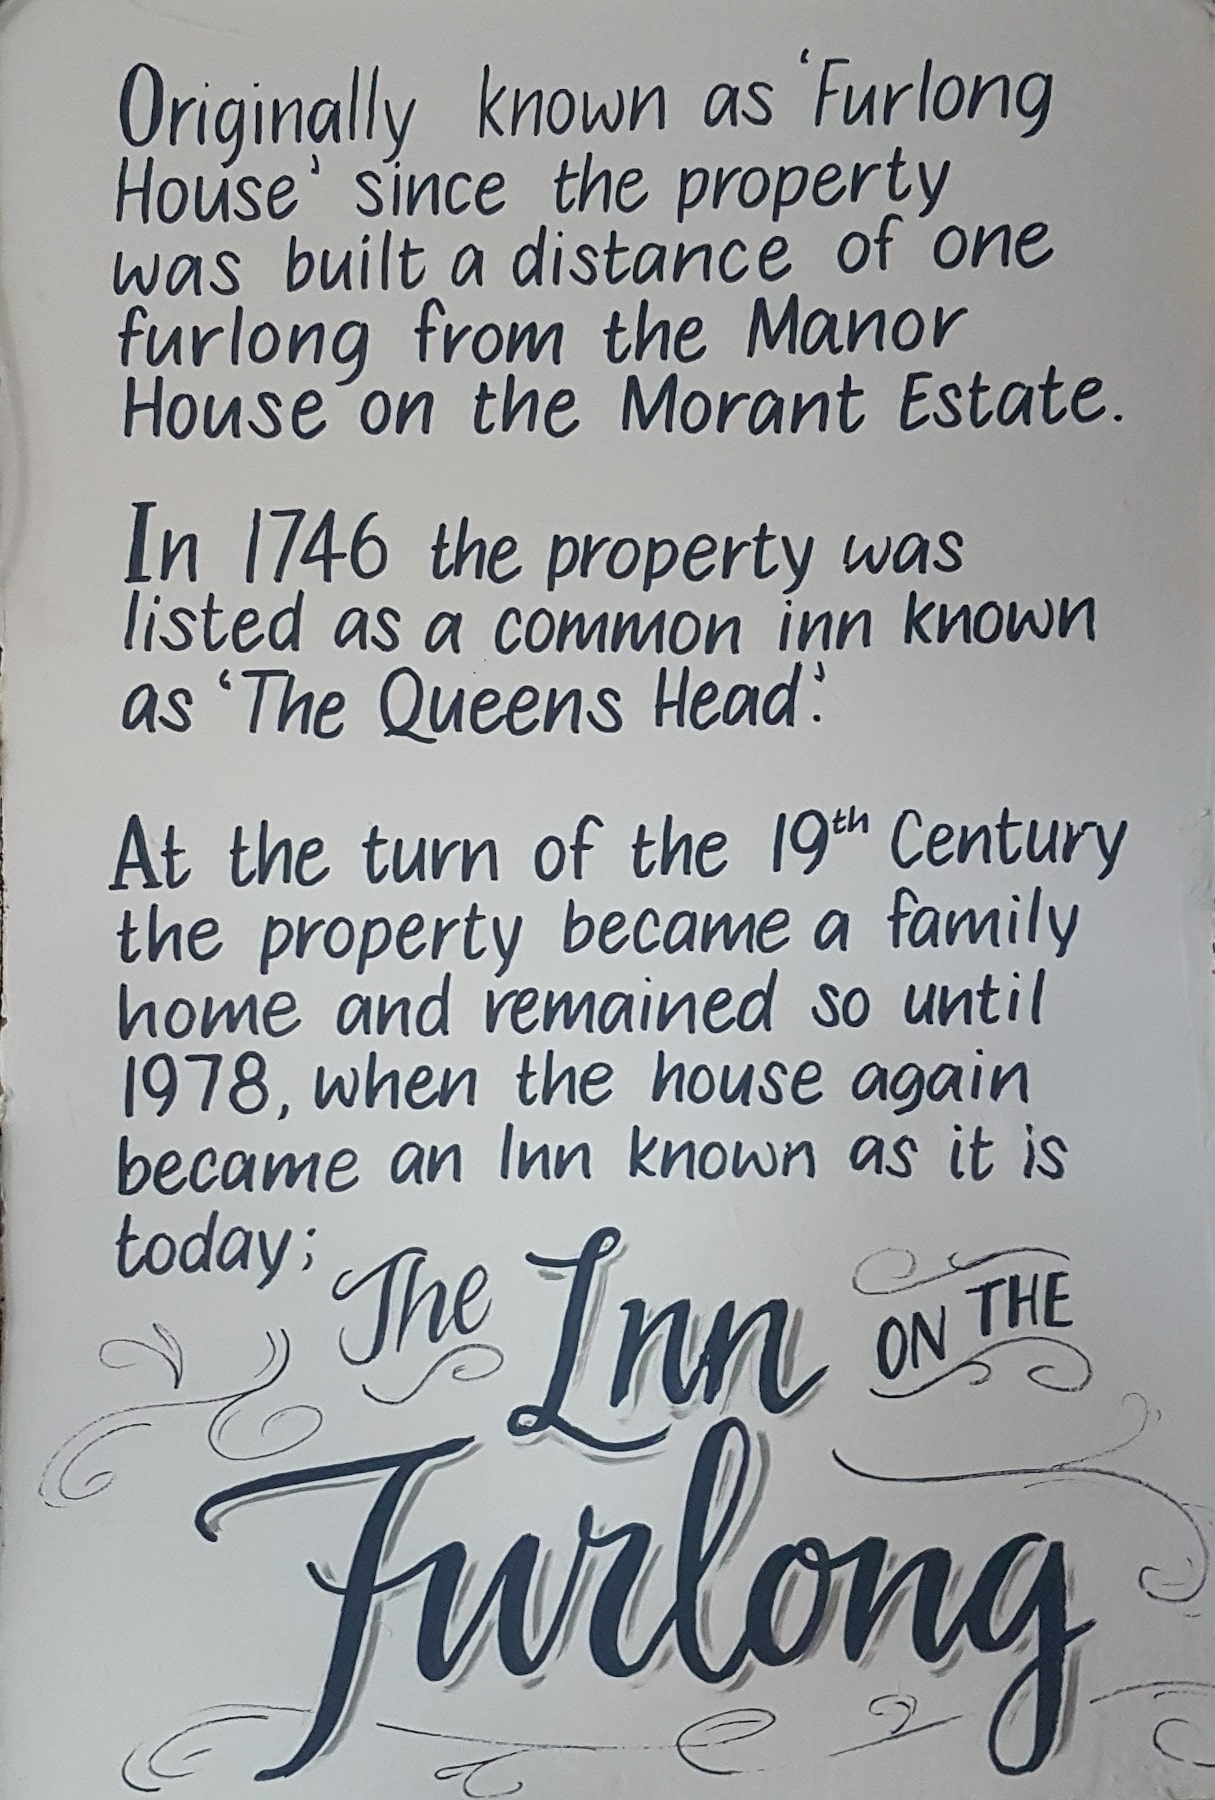 about the Inn on the Furlong